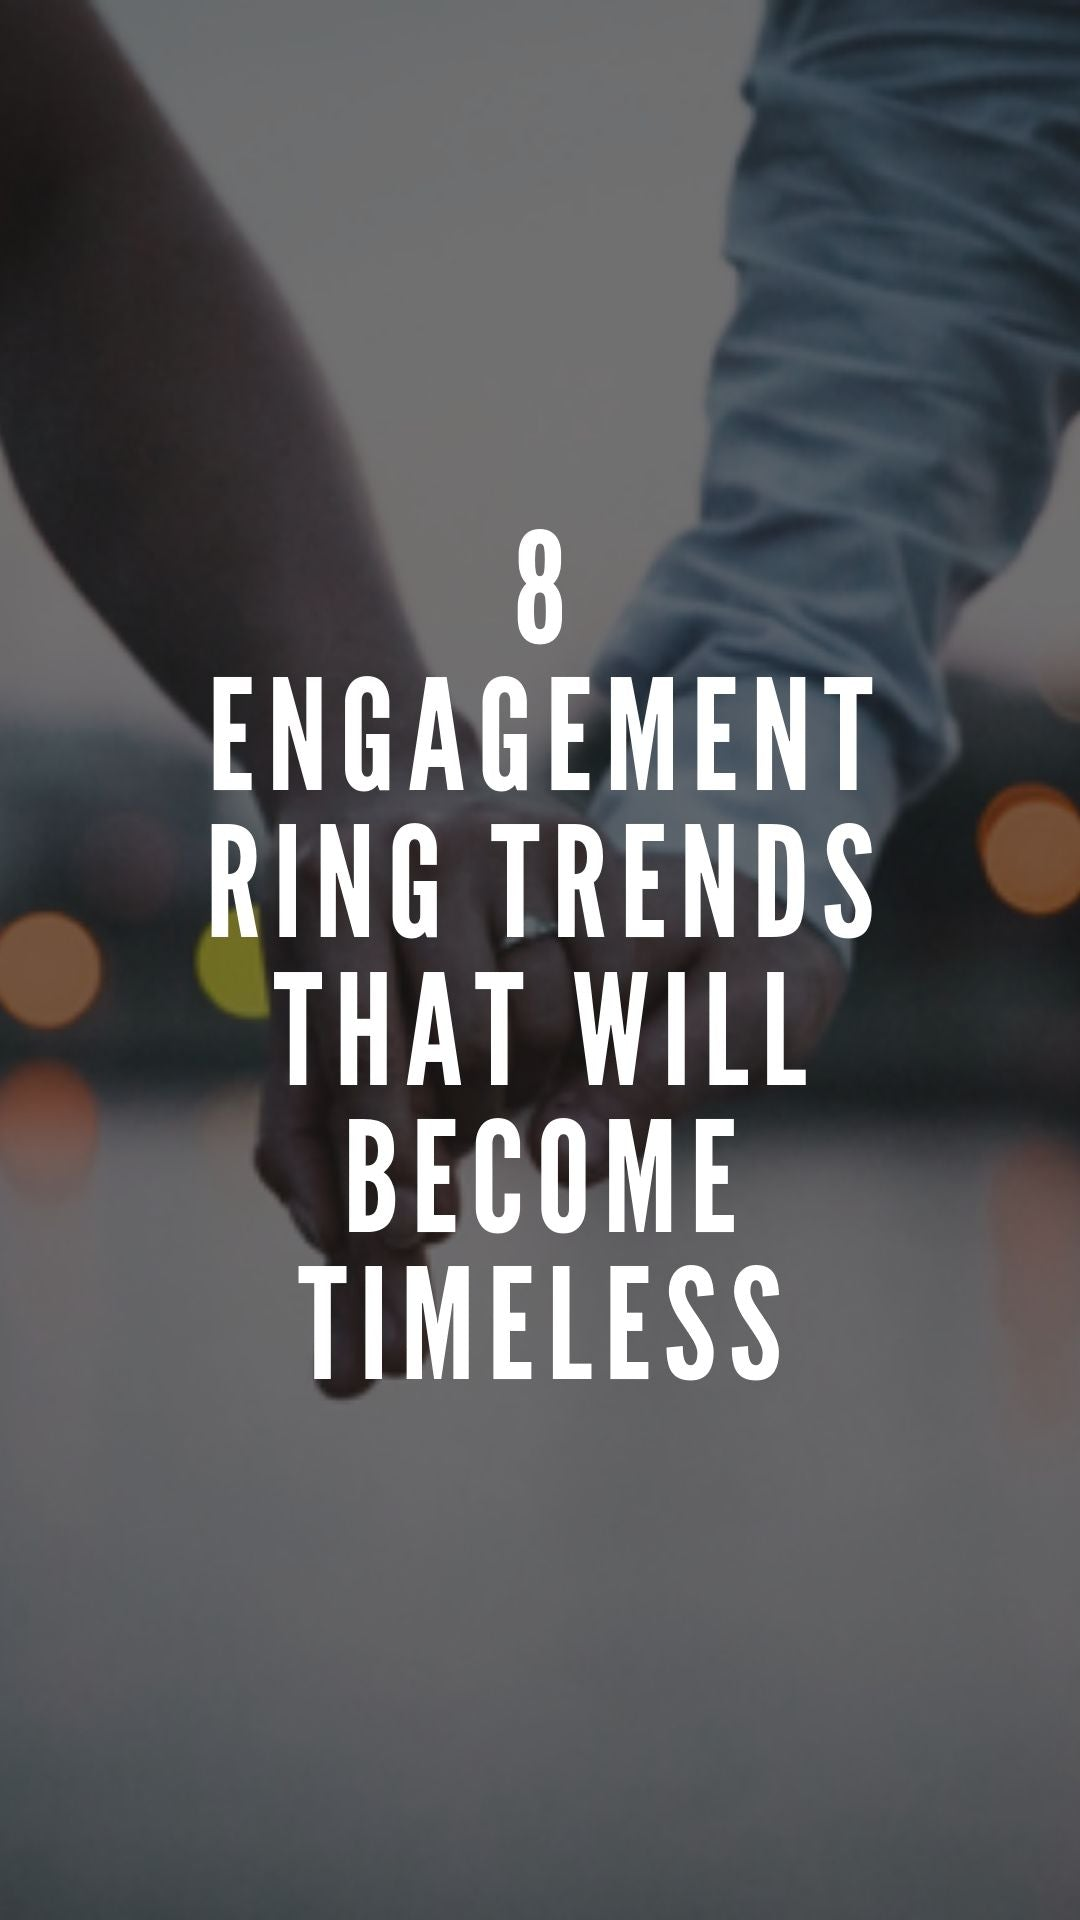 8 Engagement Ring Trends That Will Become Timeless